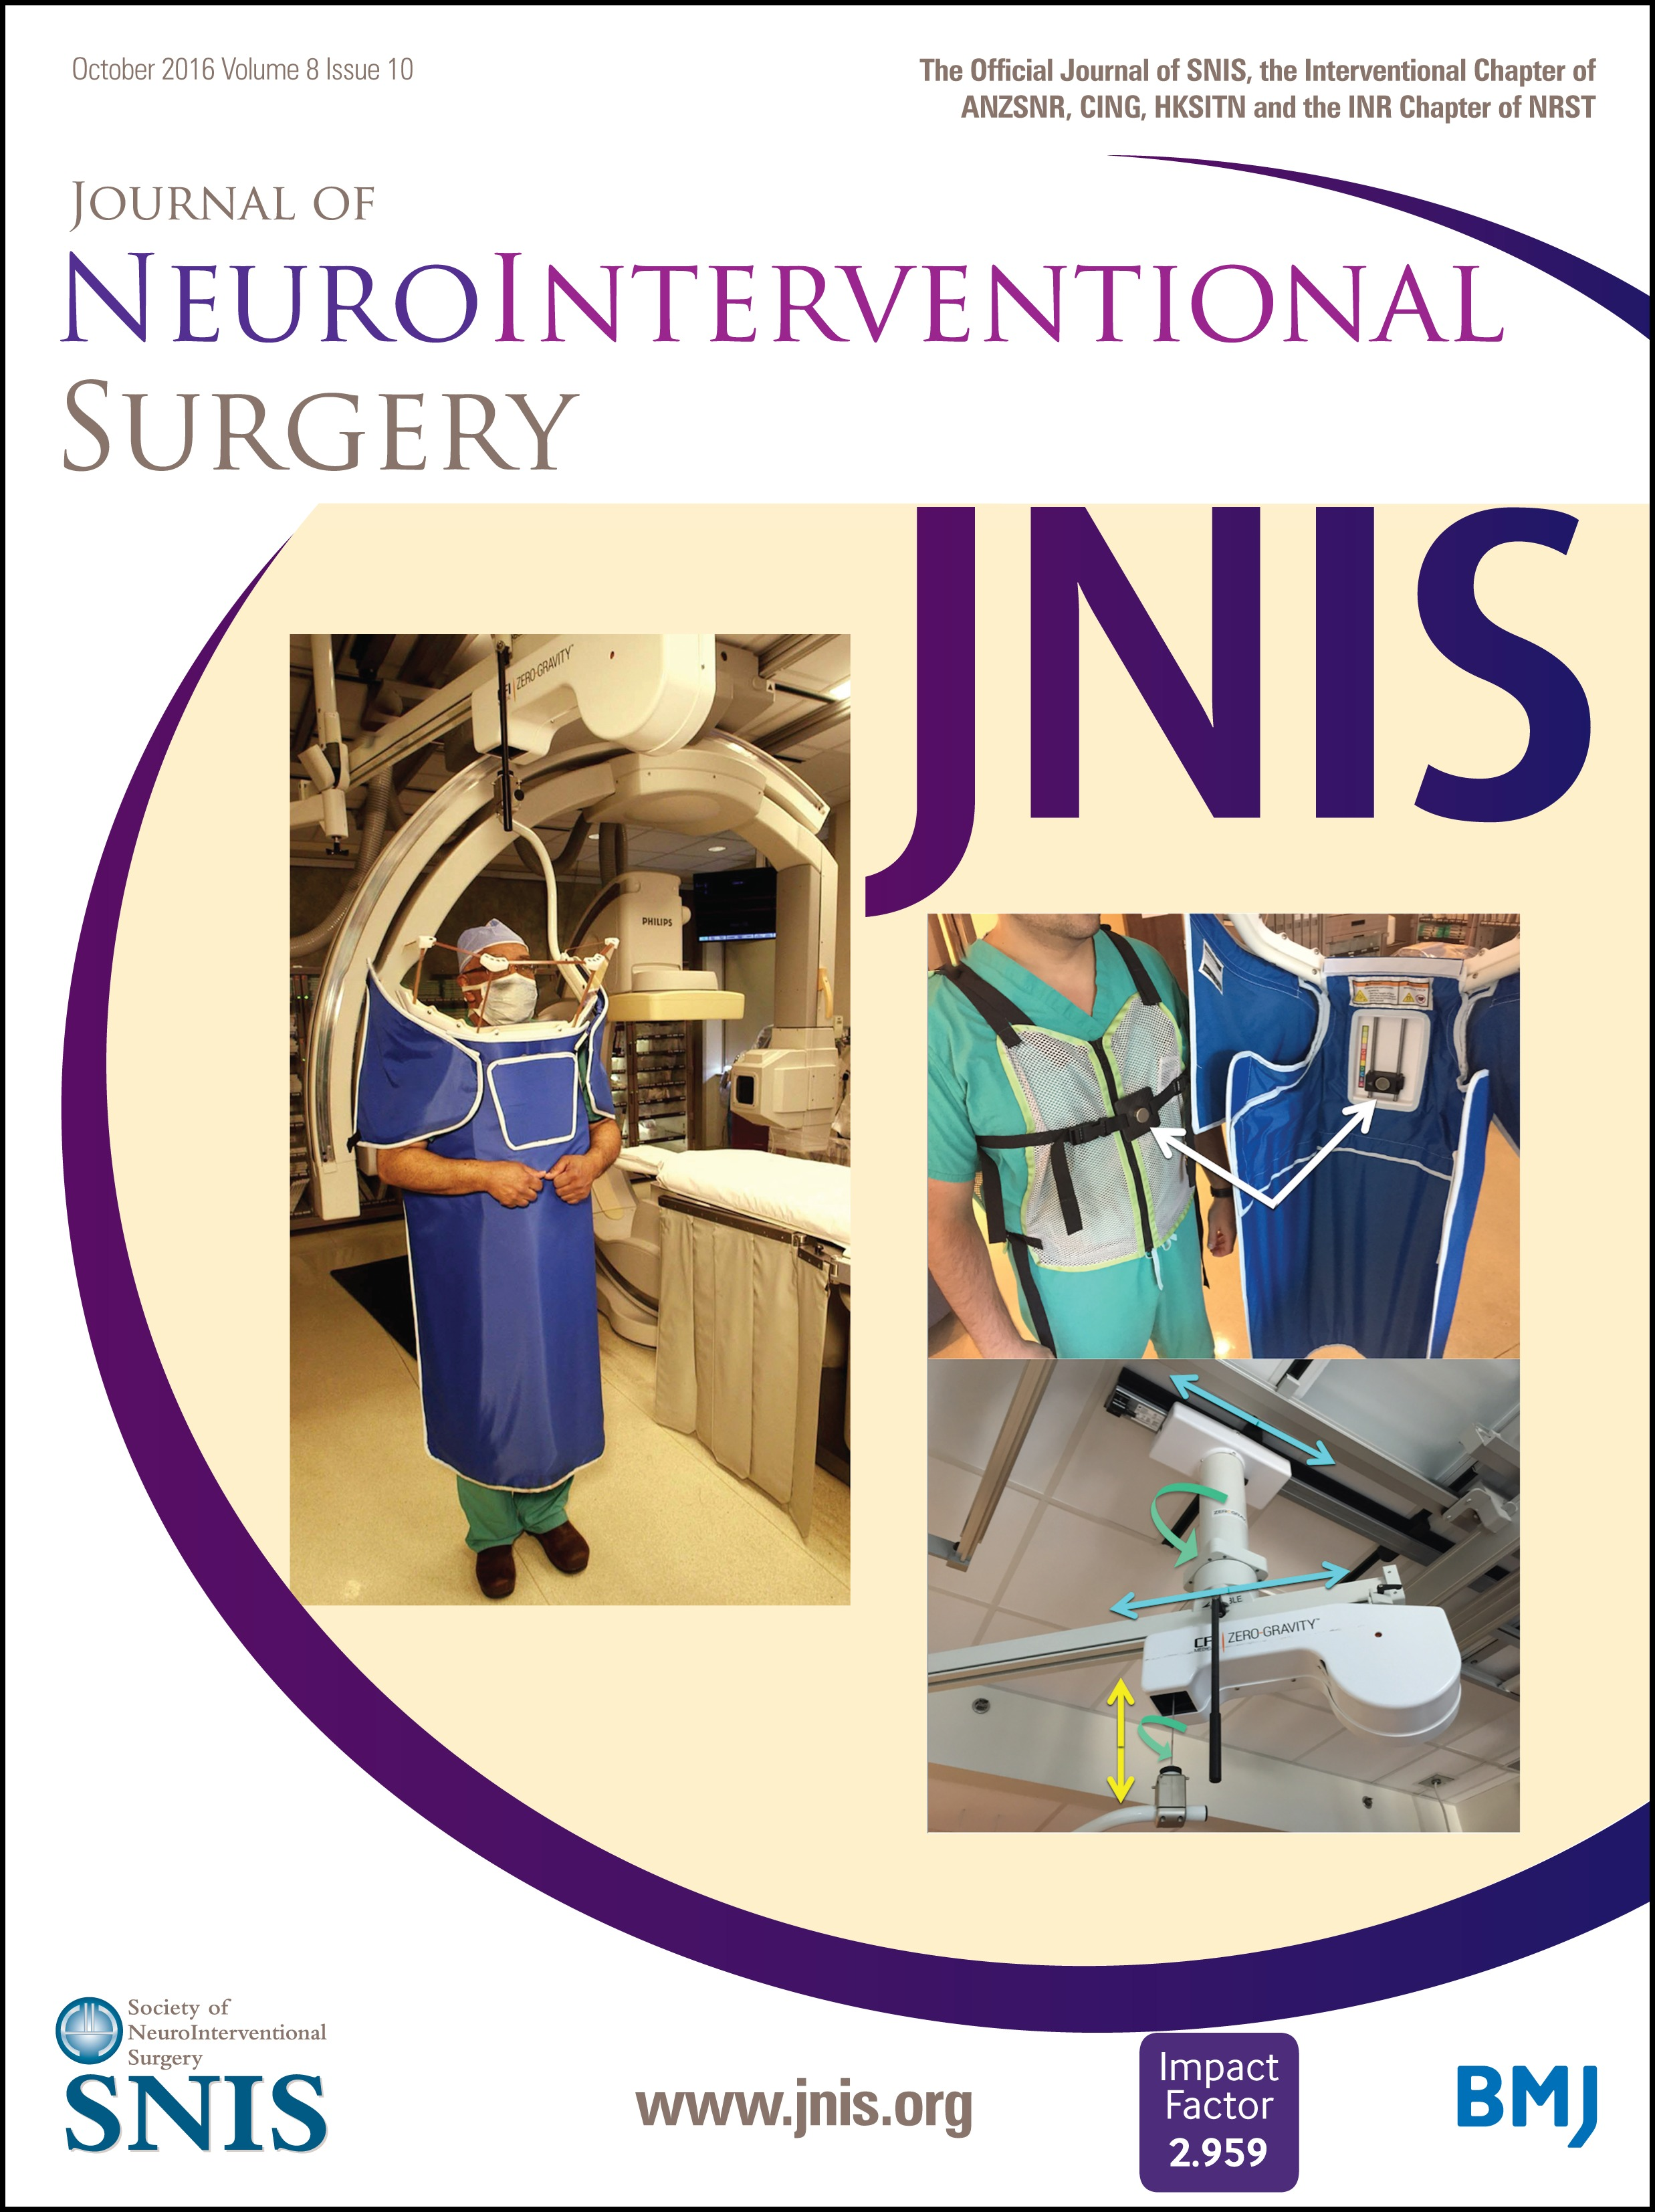 Training Guidelines for Endovascular Ischemic Stroke Intervention